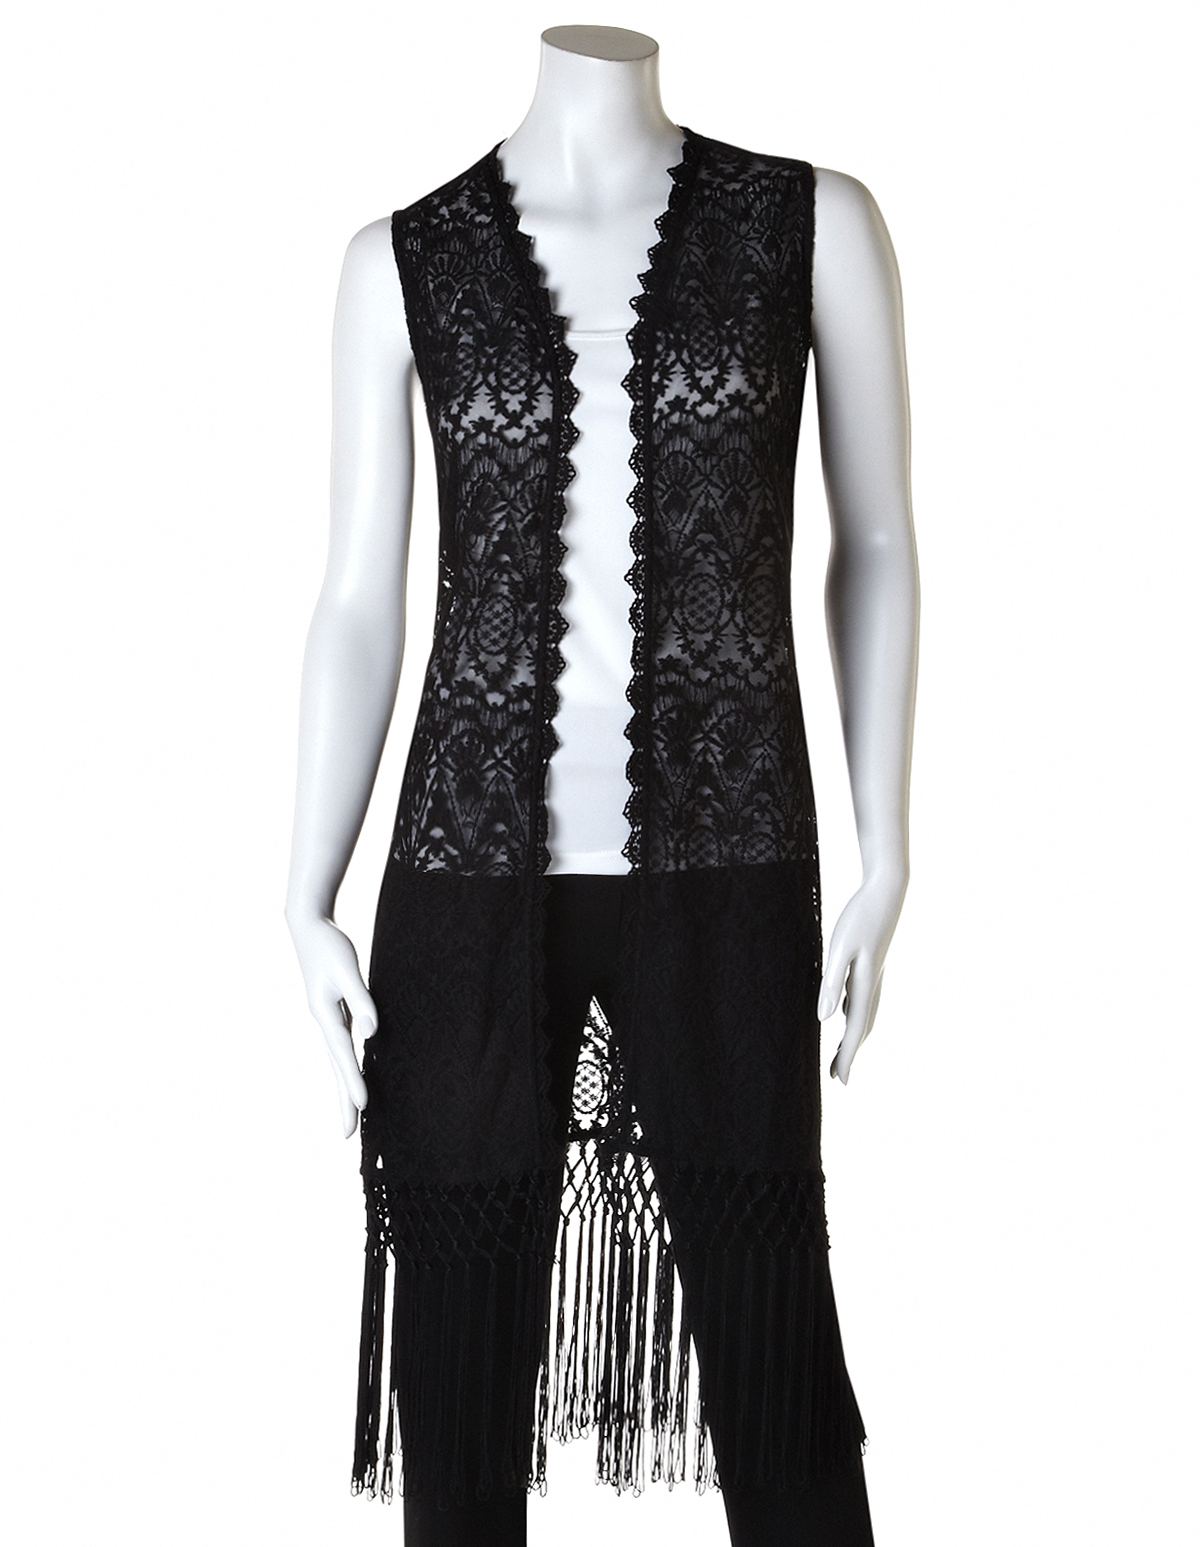 Fringed Crochet Sweater Vest, Black, Hires